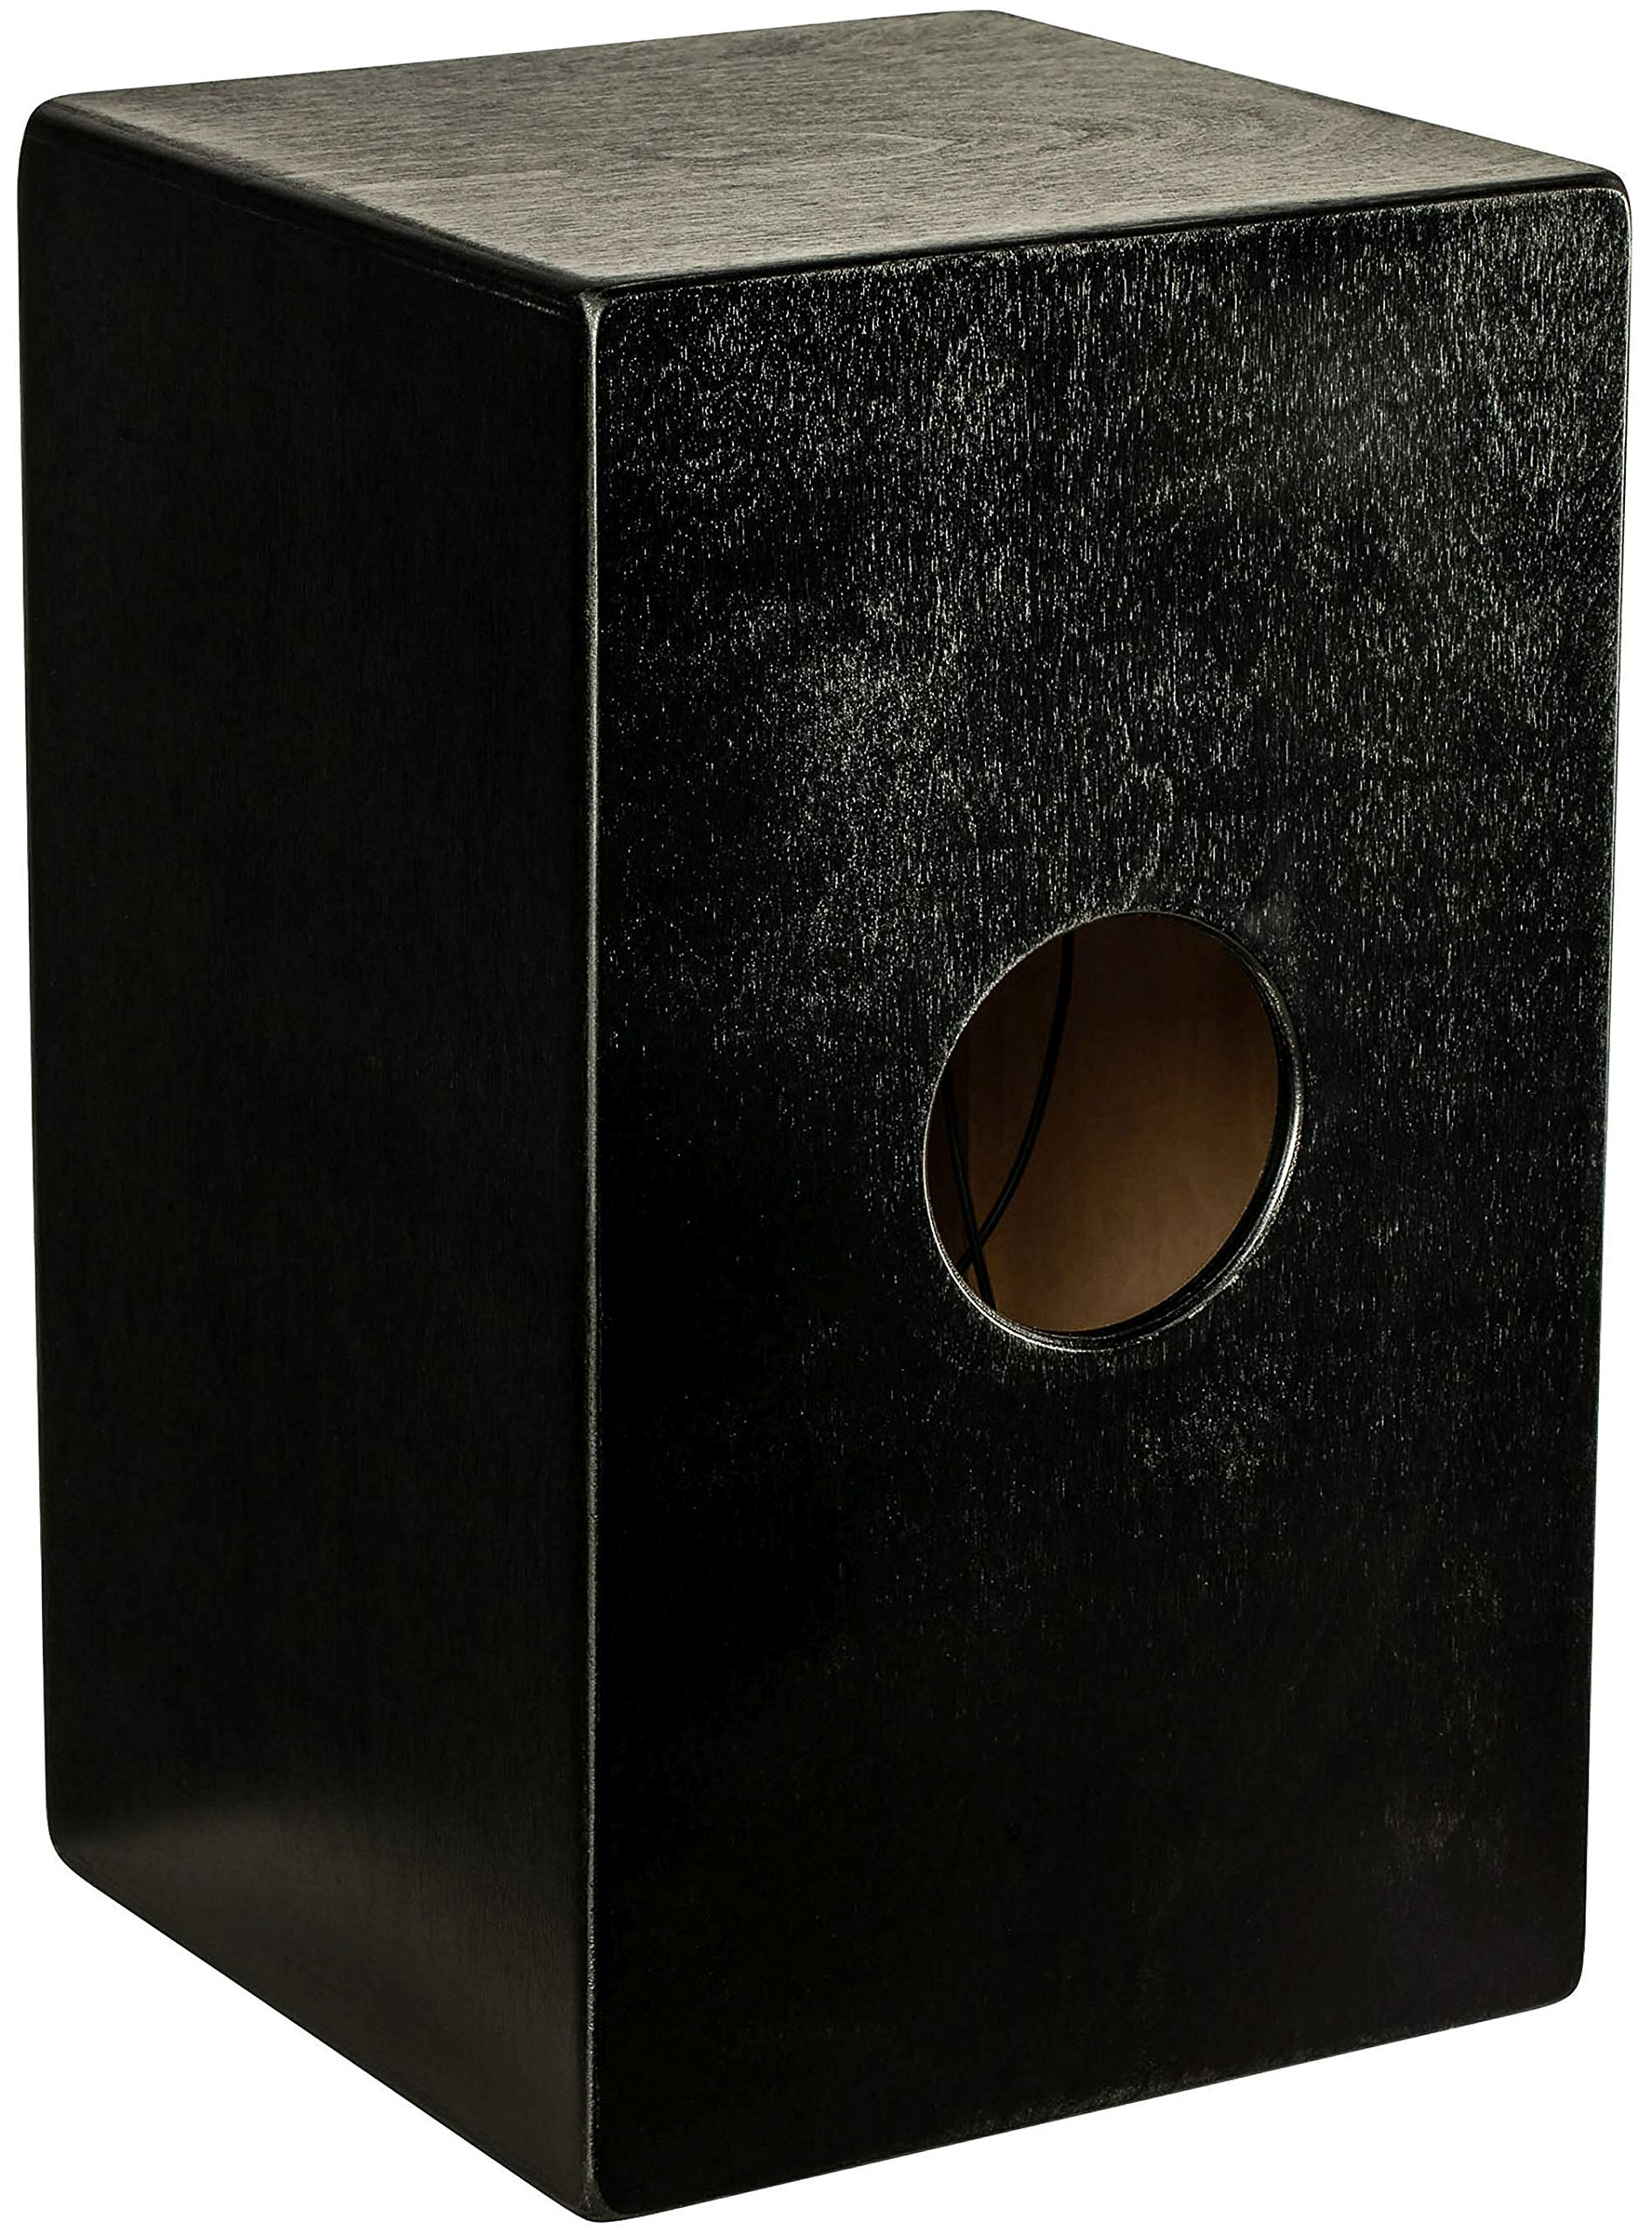 Meinl Pickup Cajon Box Drum with Internal Snares - MADE IN EUROPE - Baltic Birch Wood, Snarecraft Series, 2-YEAR WARRANTY (PSC100B) by Meinl Percussion (Image #2)